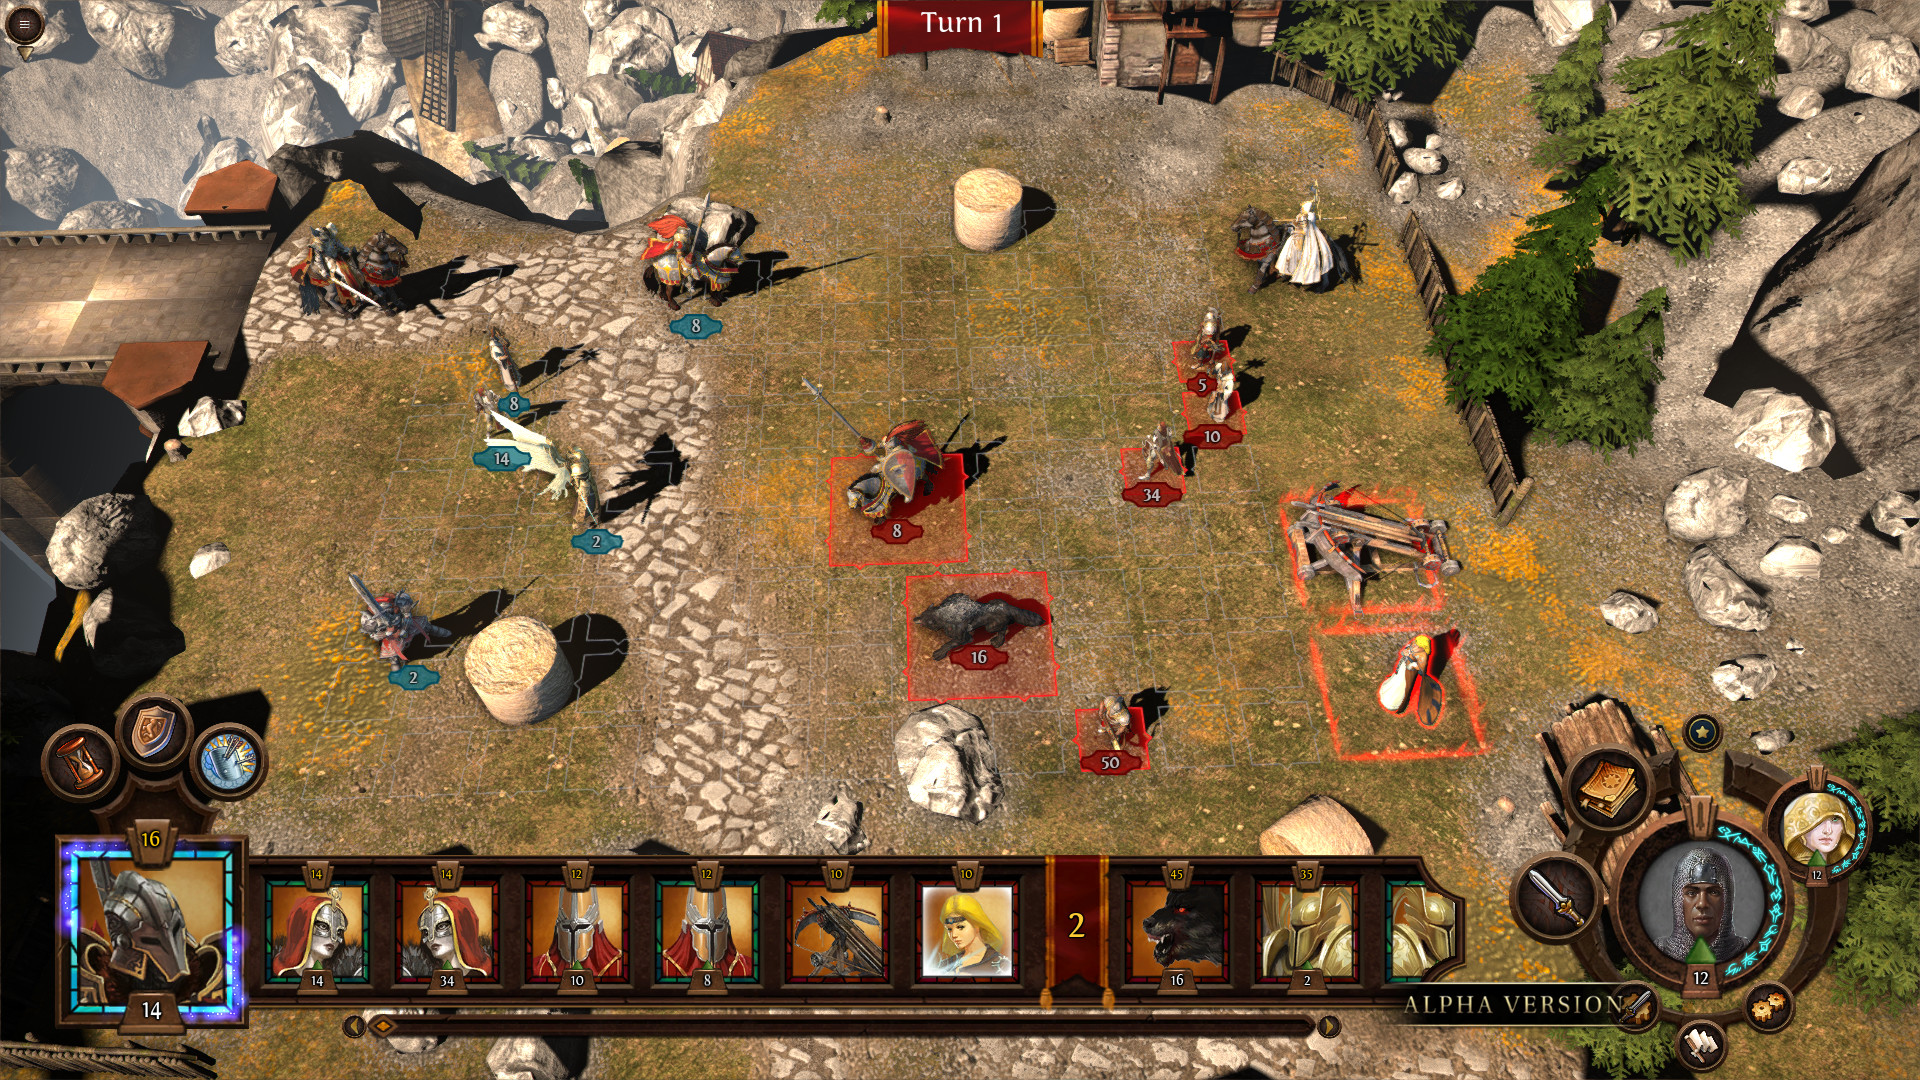 Heroes of might and magic iii hd apk free download.